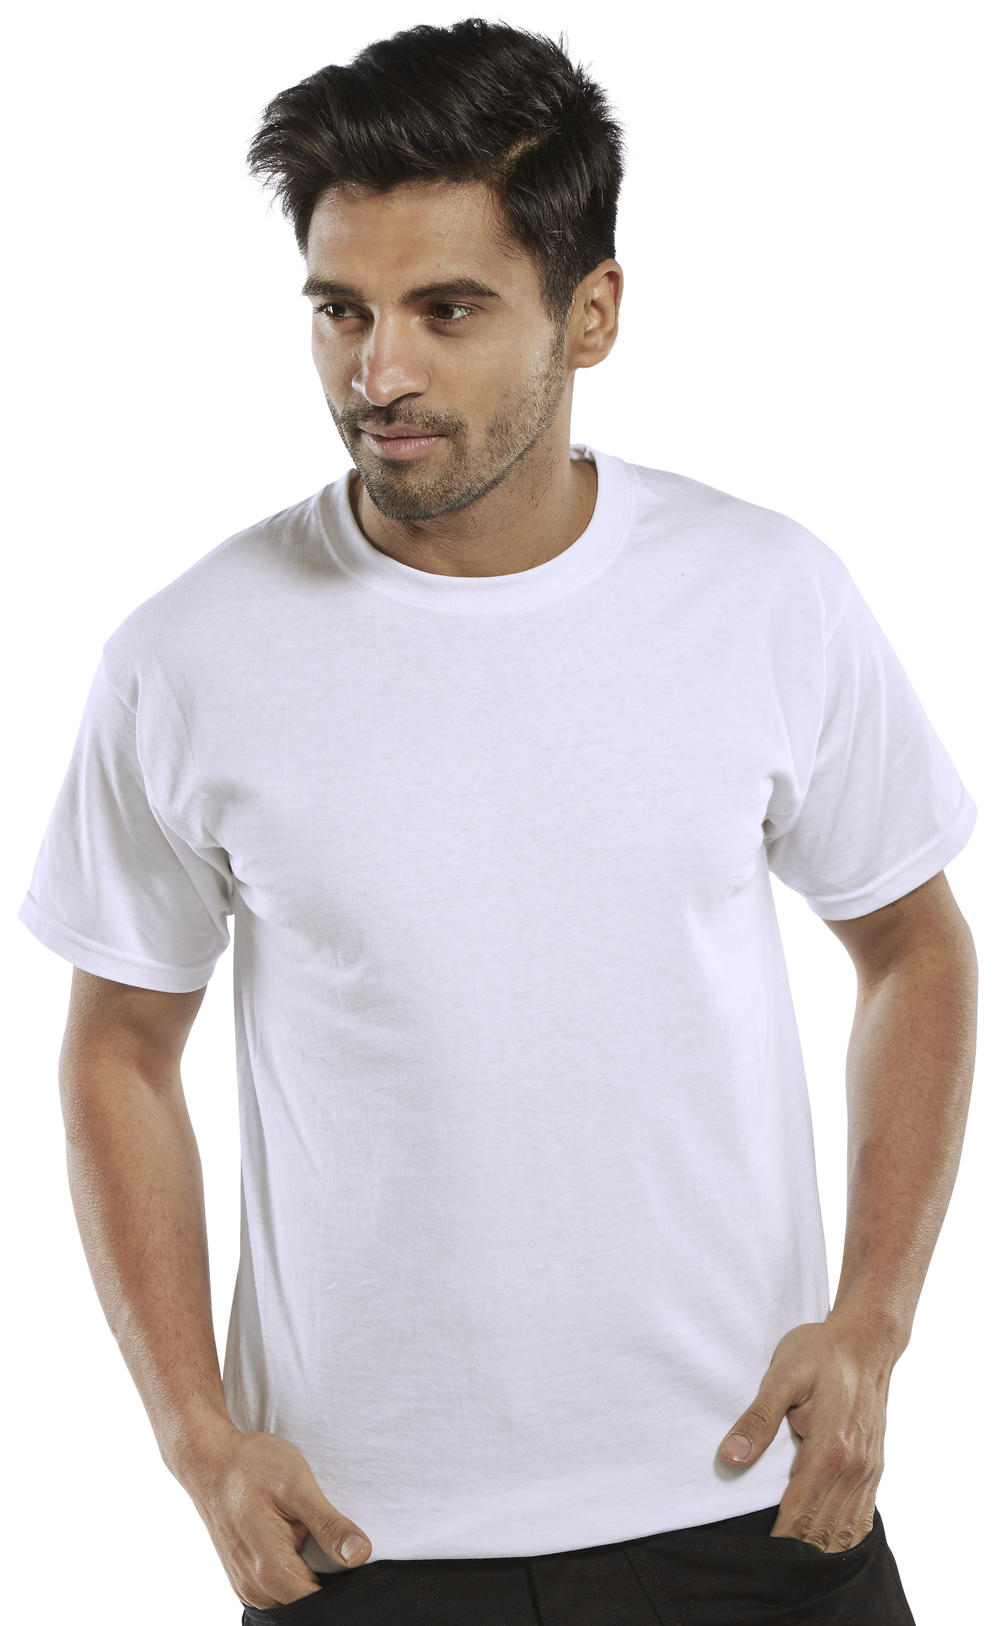 CLICK HEAVY WEIGHT TEE SHIRT - CLCTS